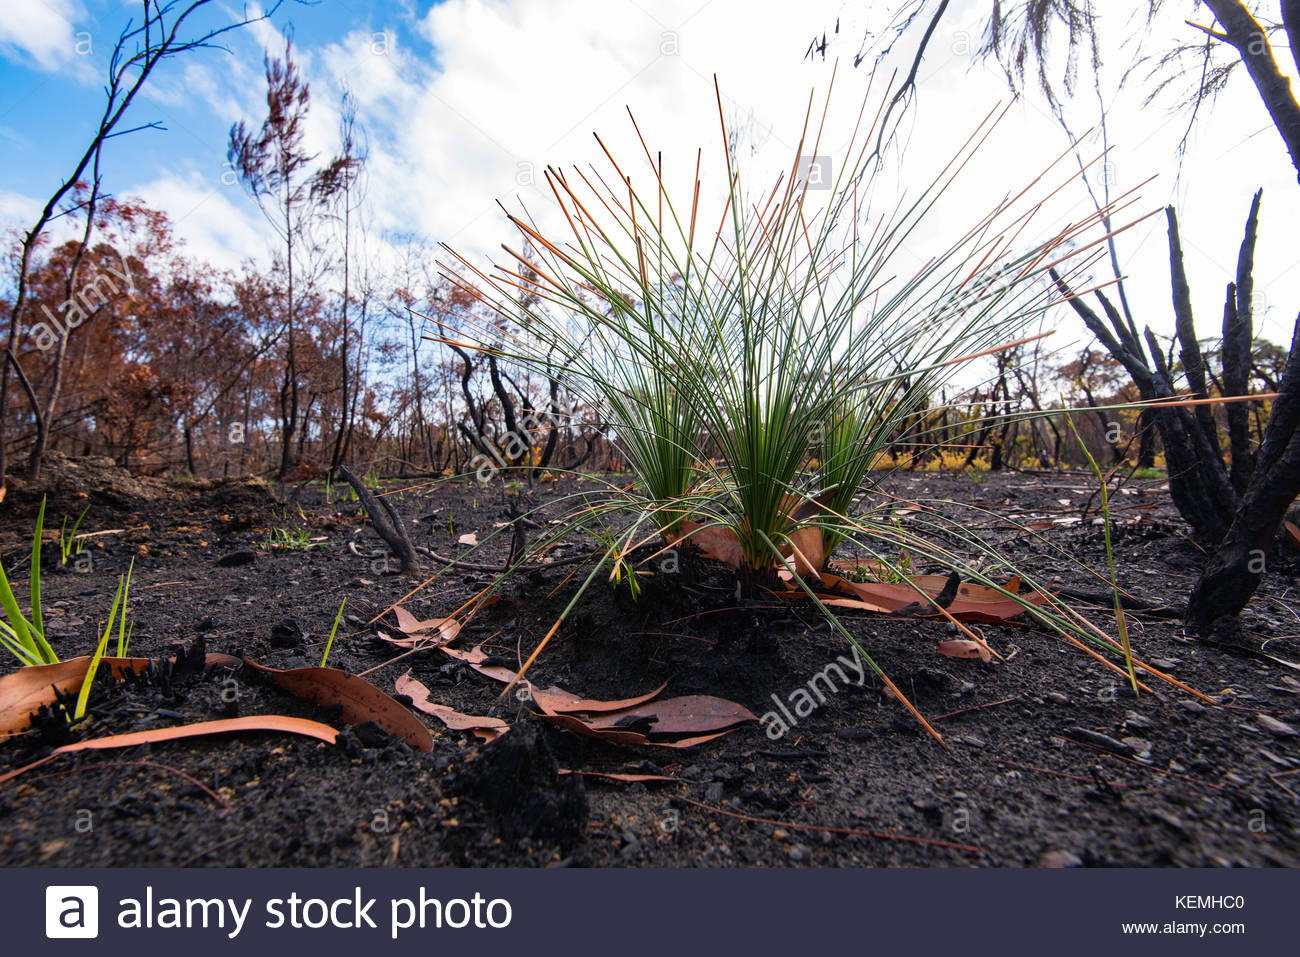 small plants quickly regrowing after a bush fire in Sydney Stock Photo